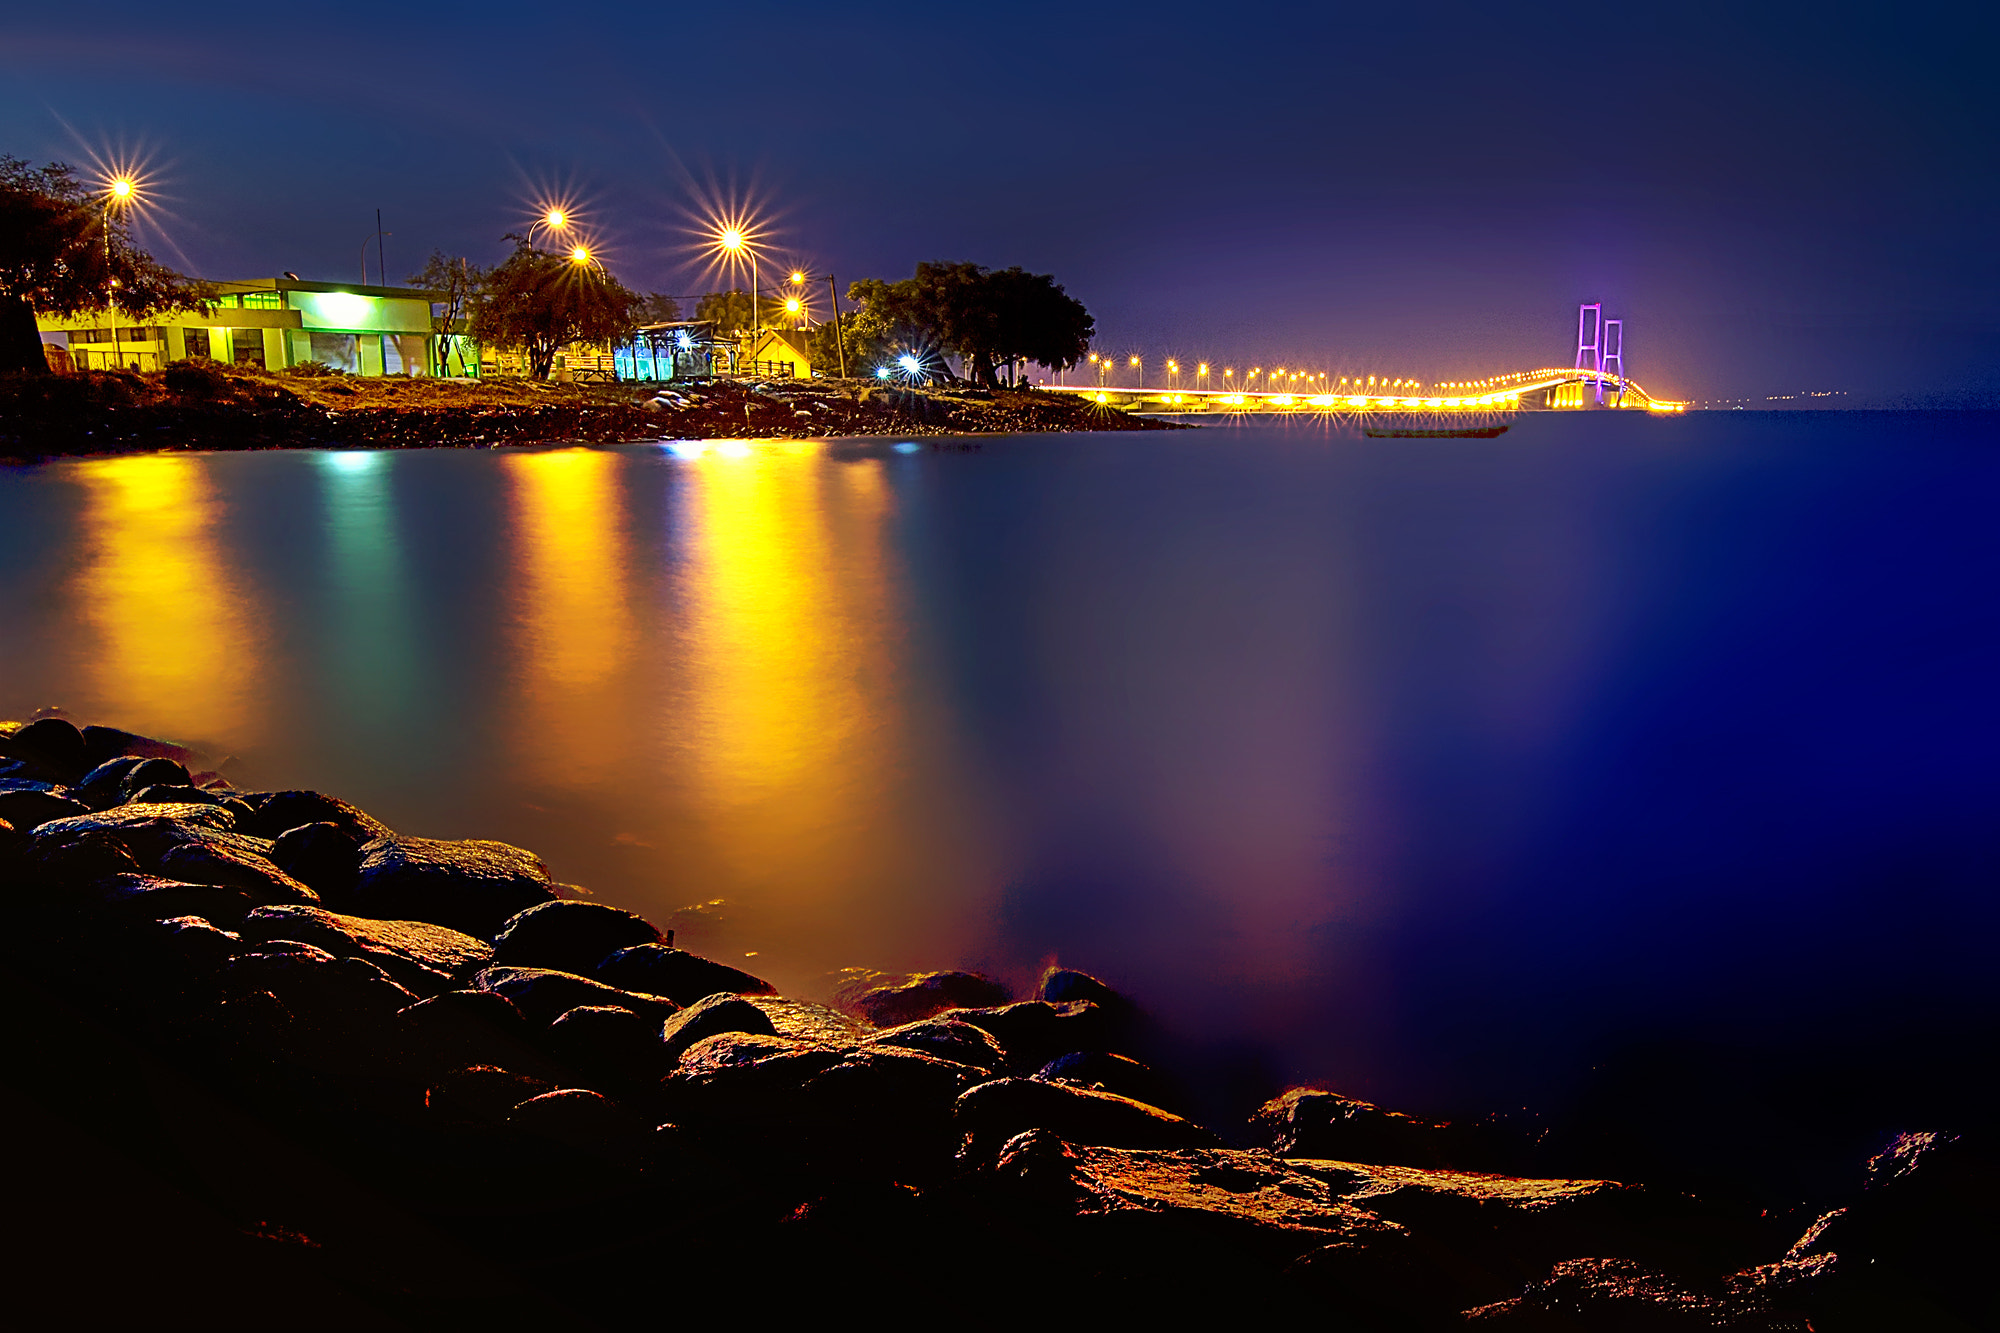 Photograph Suramadu Night by Eep Ependi on 500px